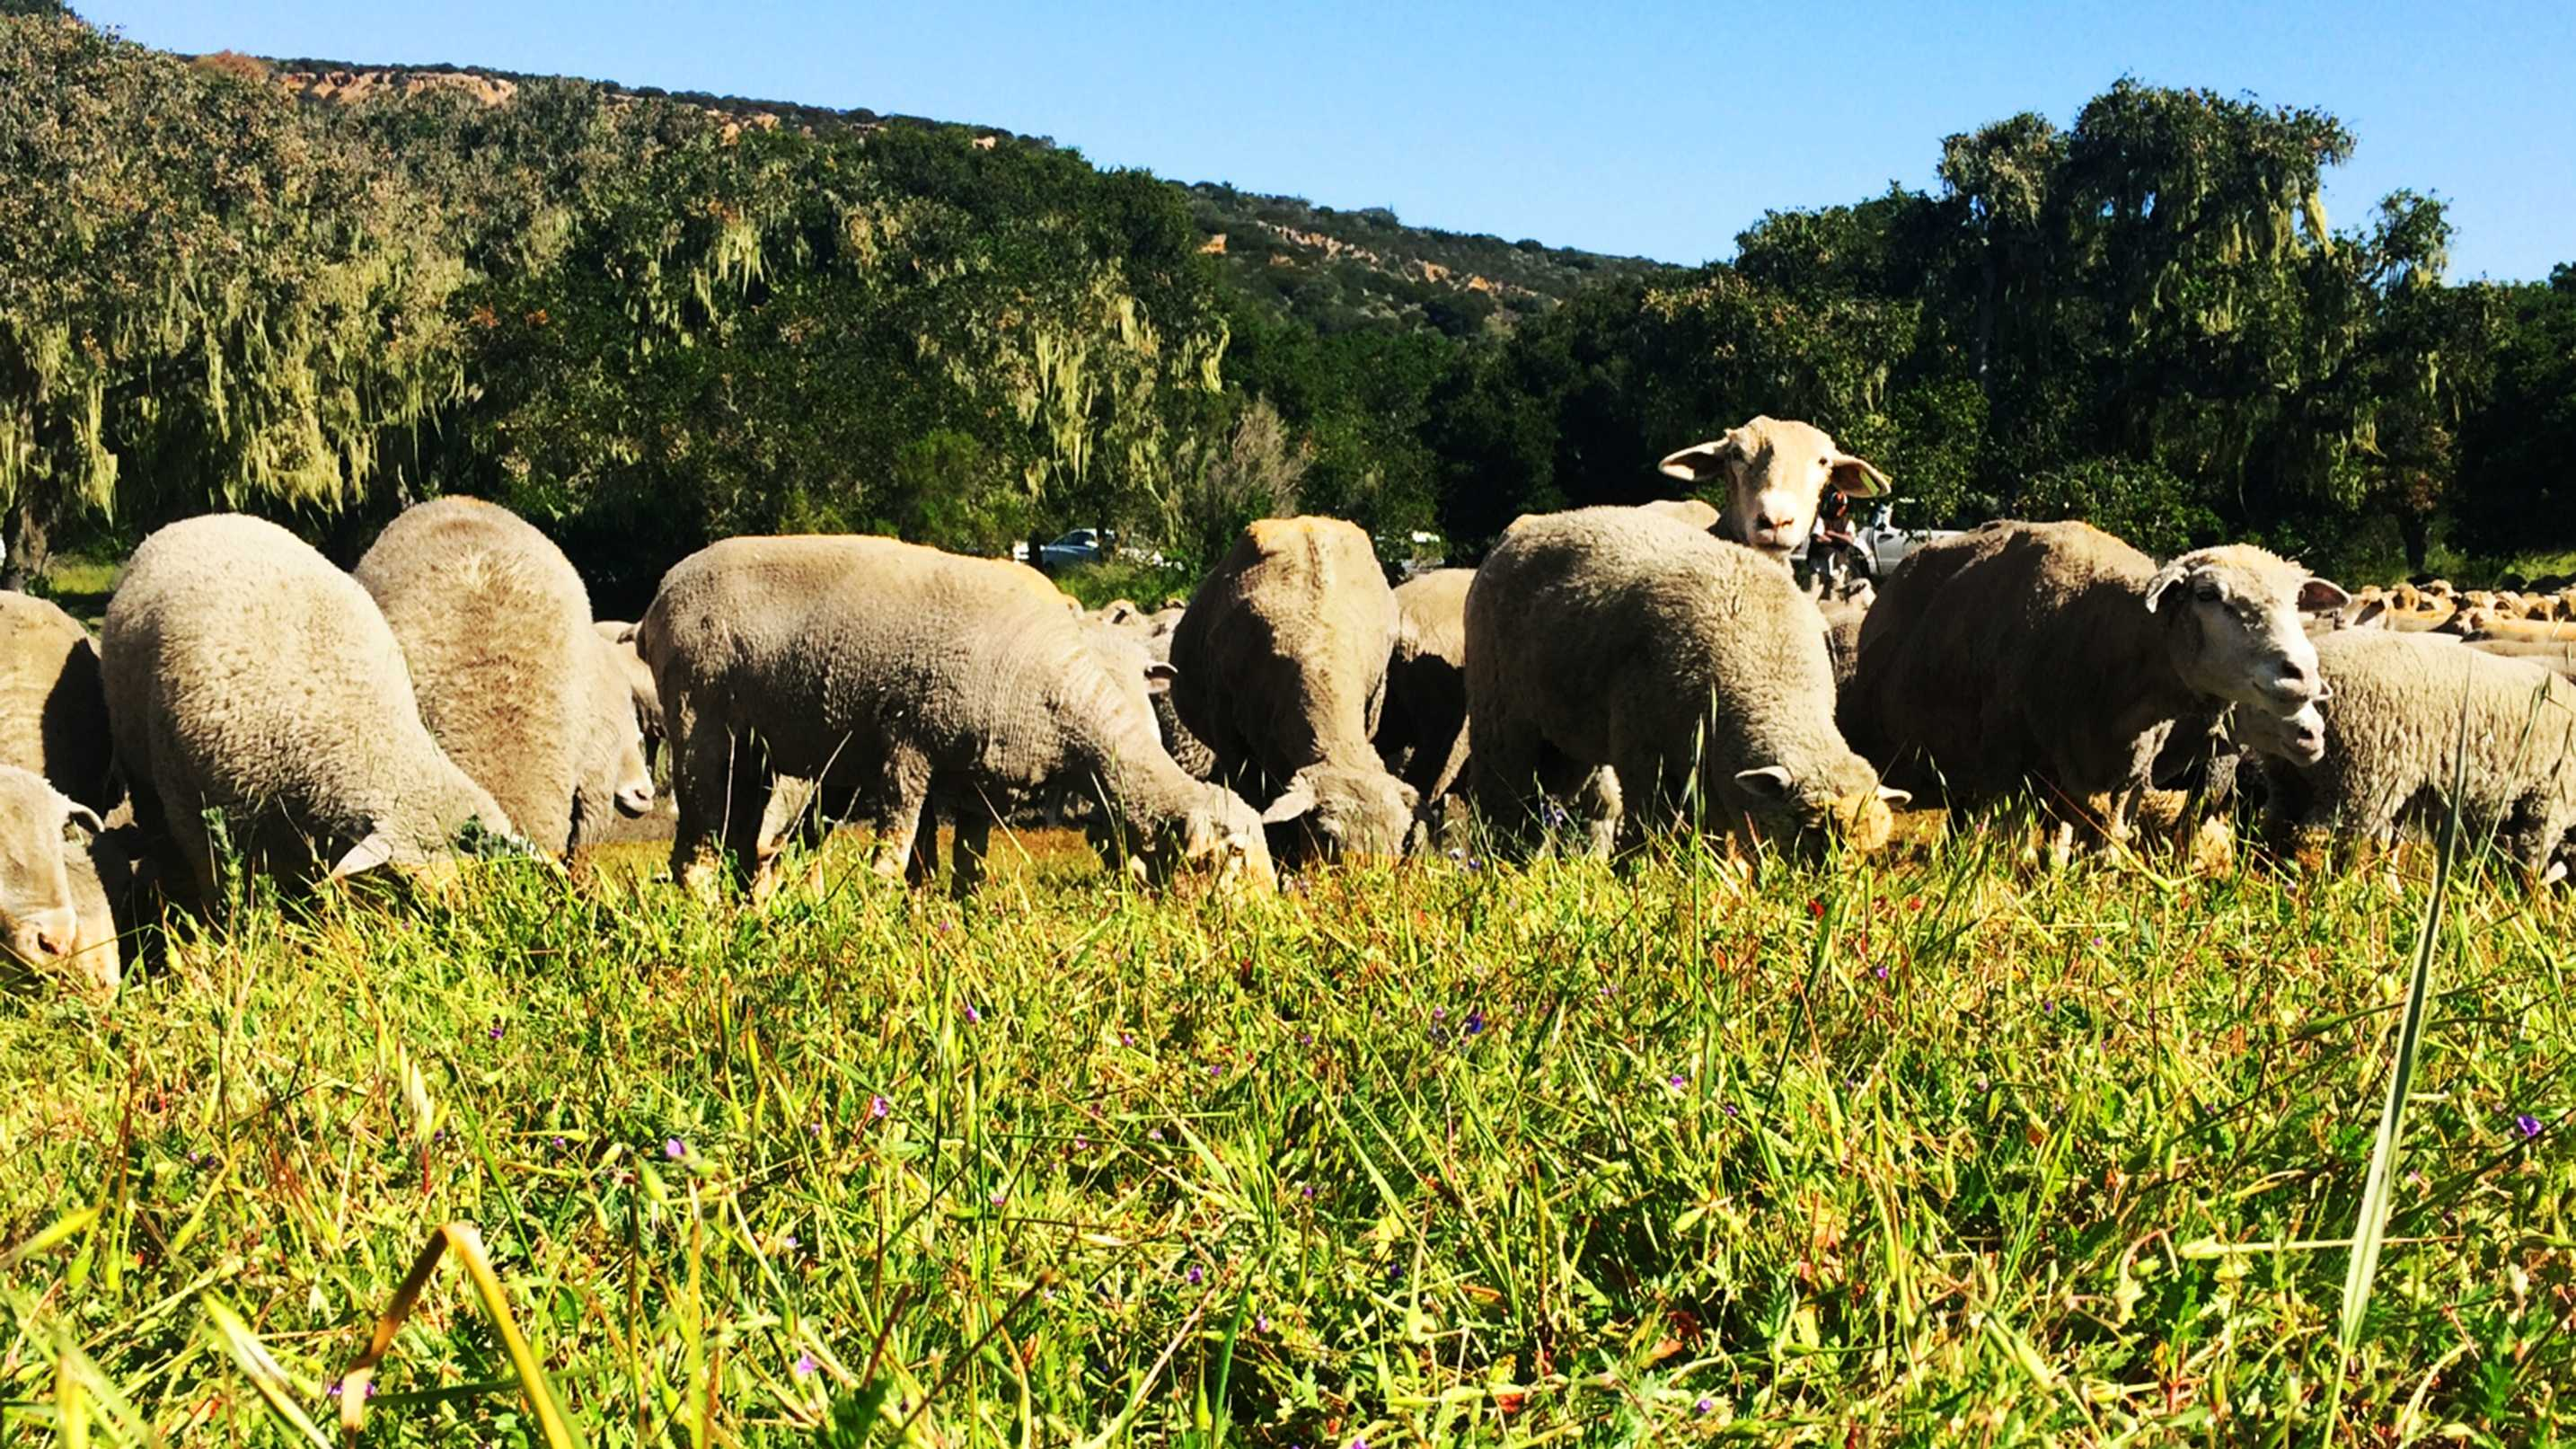 Sheep graze at Fort Ord. (April 4, 2015)